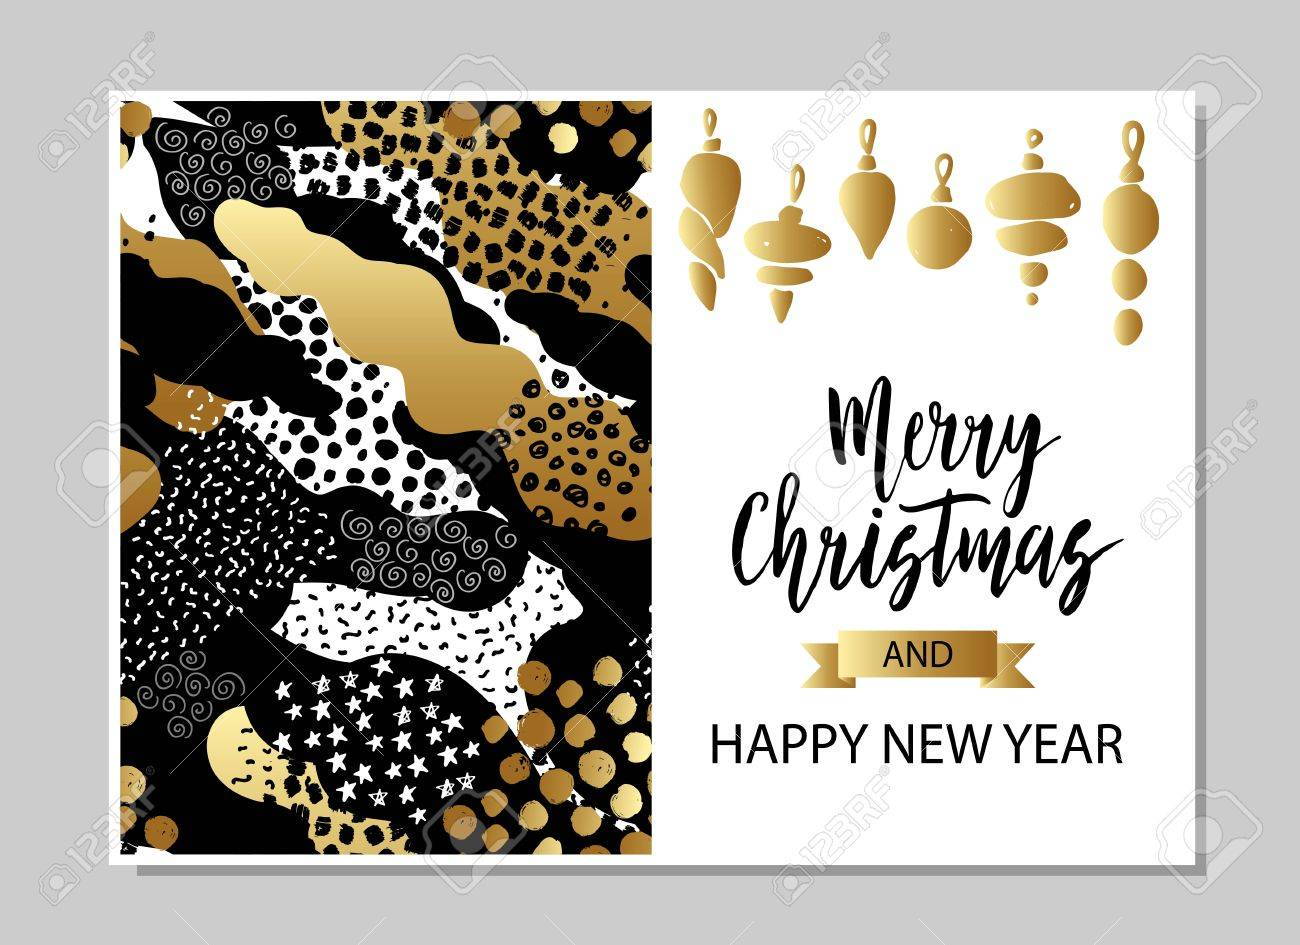 merry christmas and happy new year card template hand drawn textures lettering golden